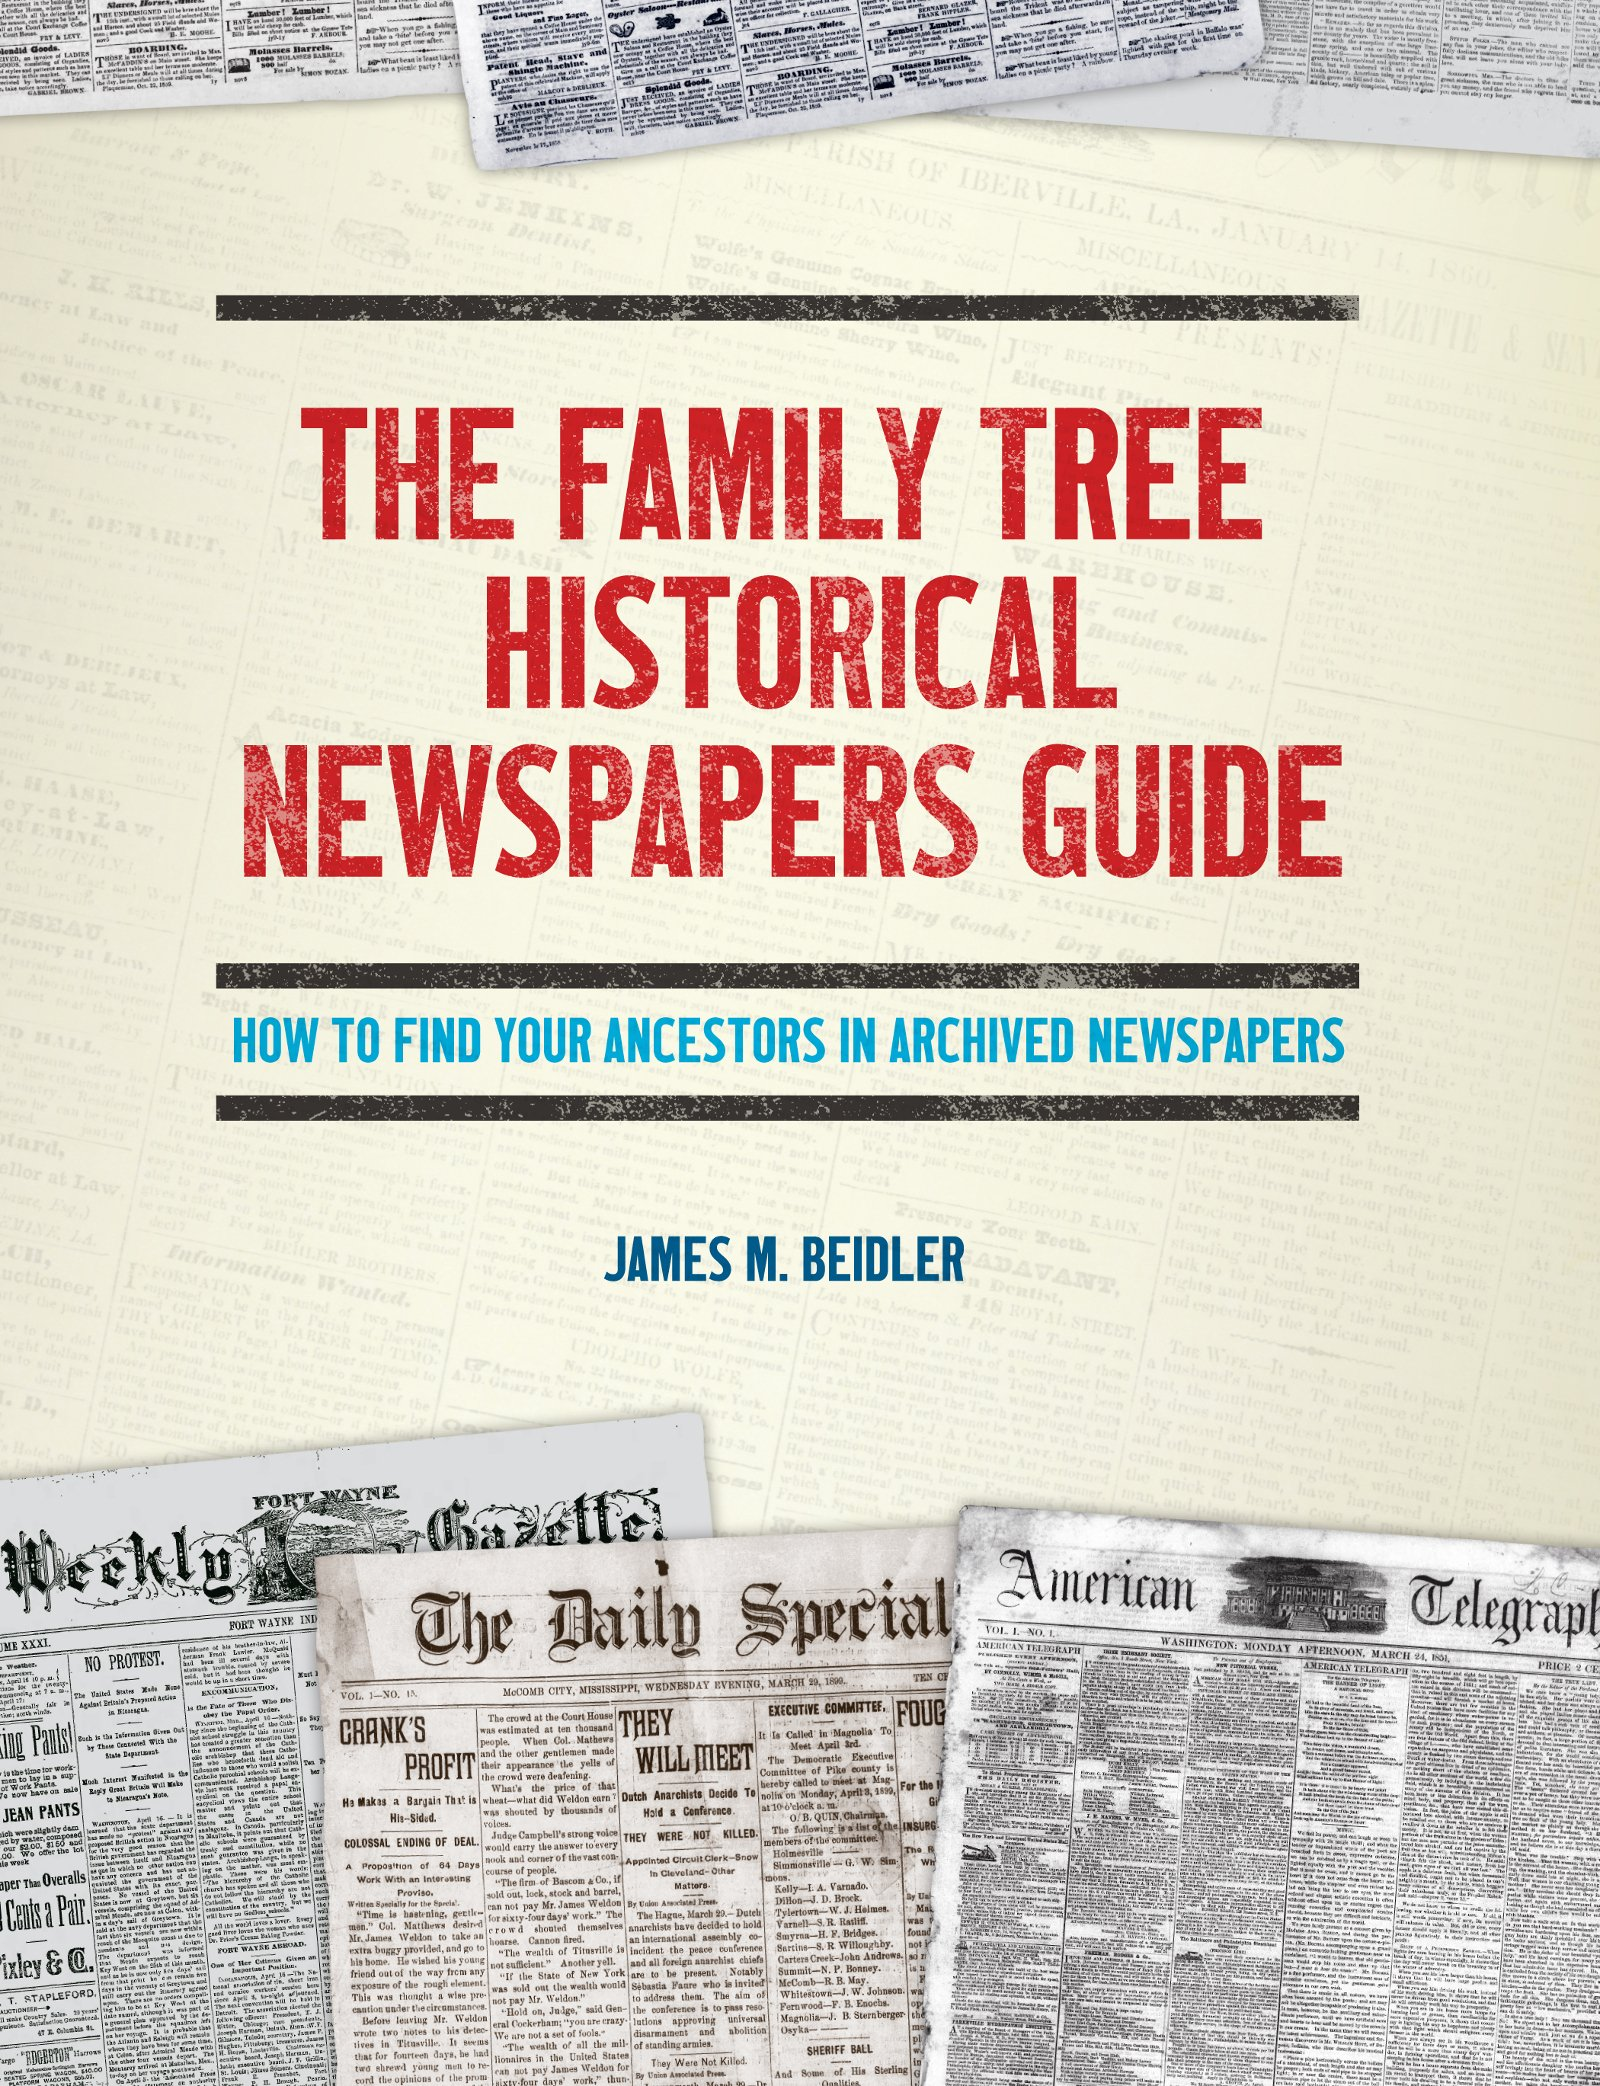 The Family Tree Historical Newspapers Guide: How to Find Your Ancestors in Archived Newspapers by Family Tree Books